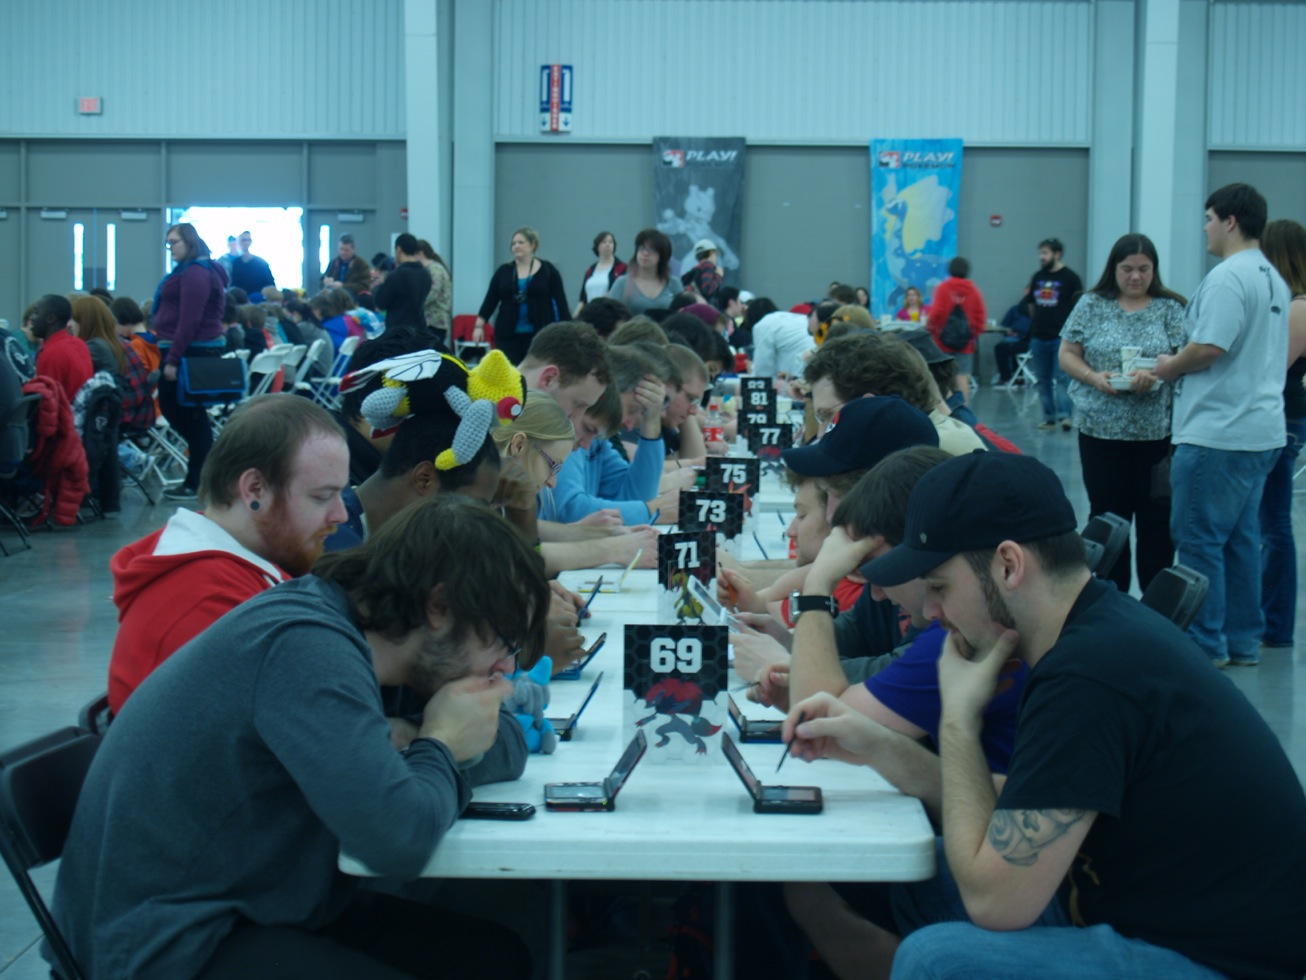 In pictures: Pocket Gamer heads to the Pokemon Winter Regional Championships